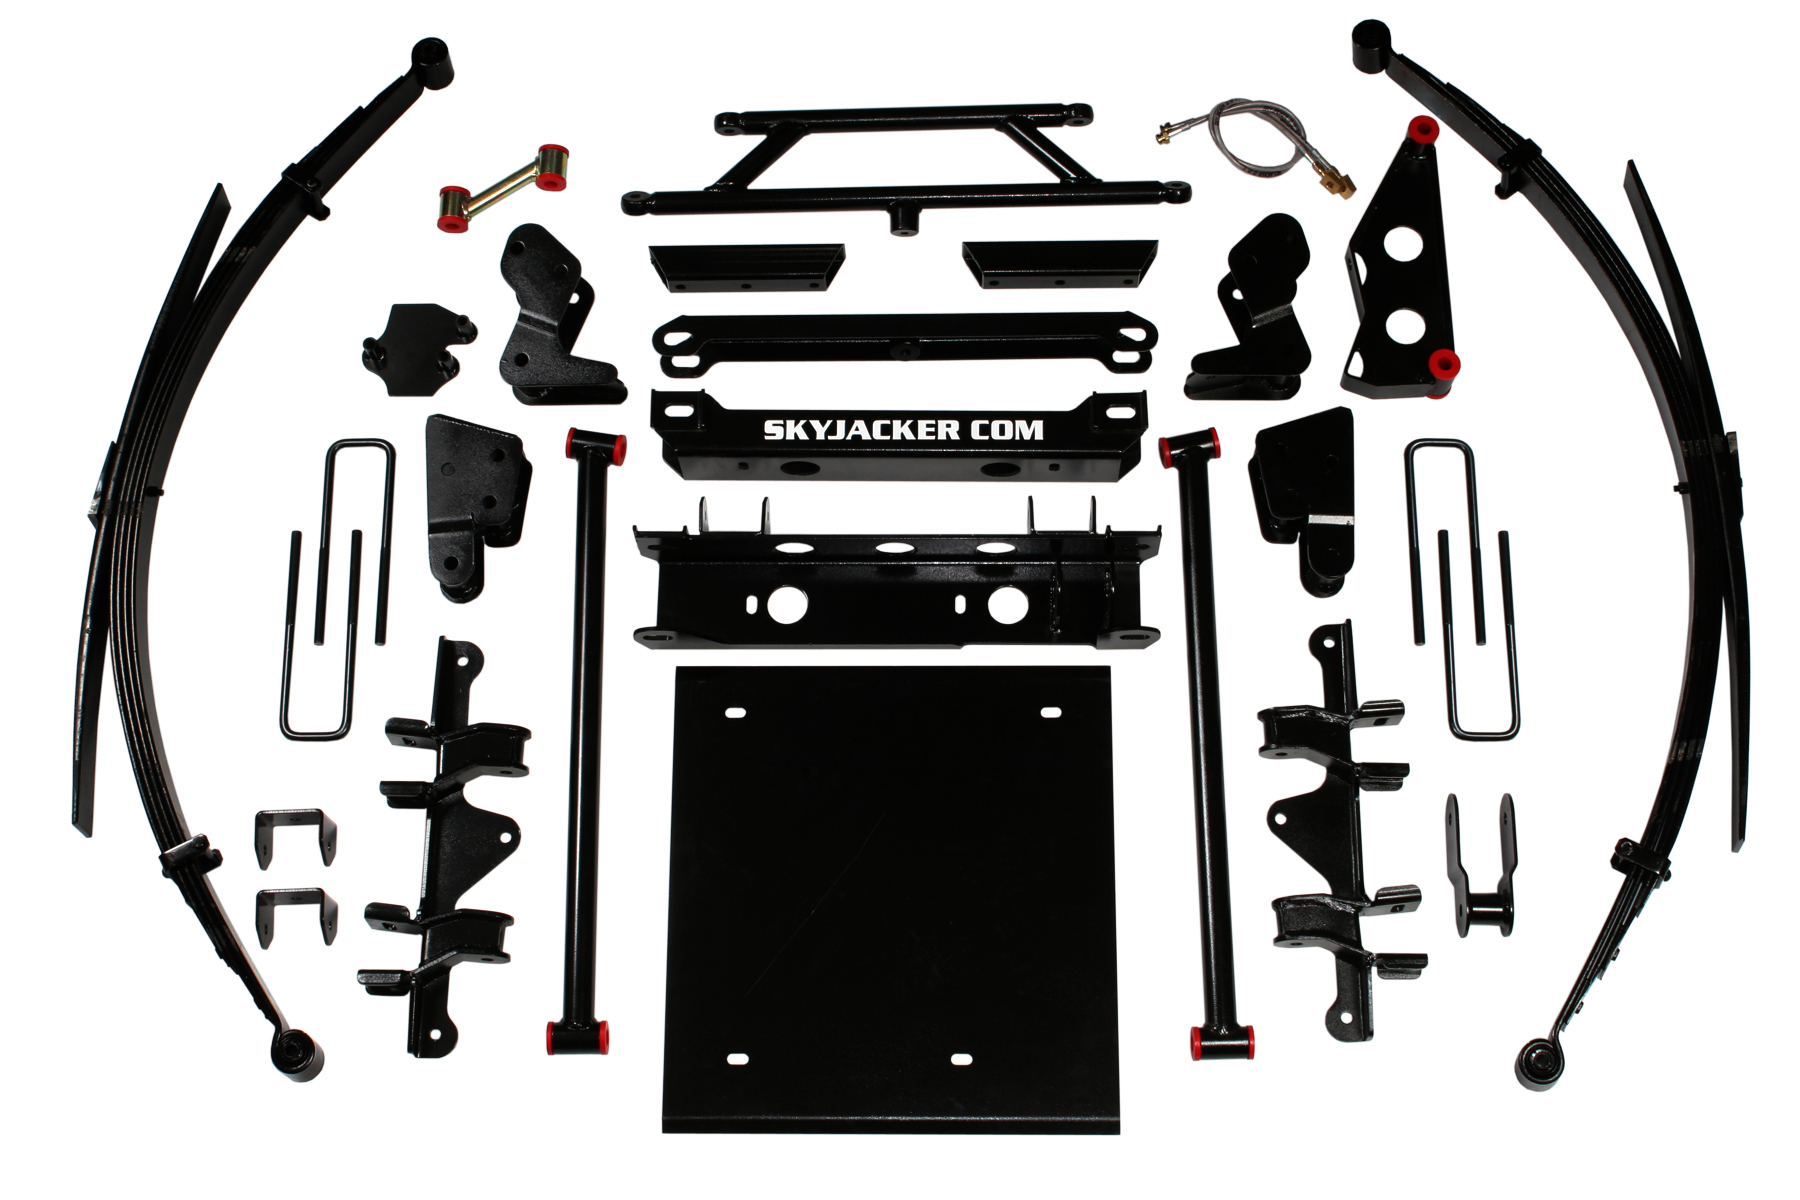 C4636KS-N | 4.5-6 in. Suspension Lift System with Nitro Shocks